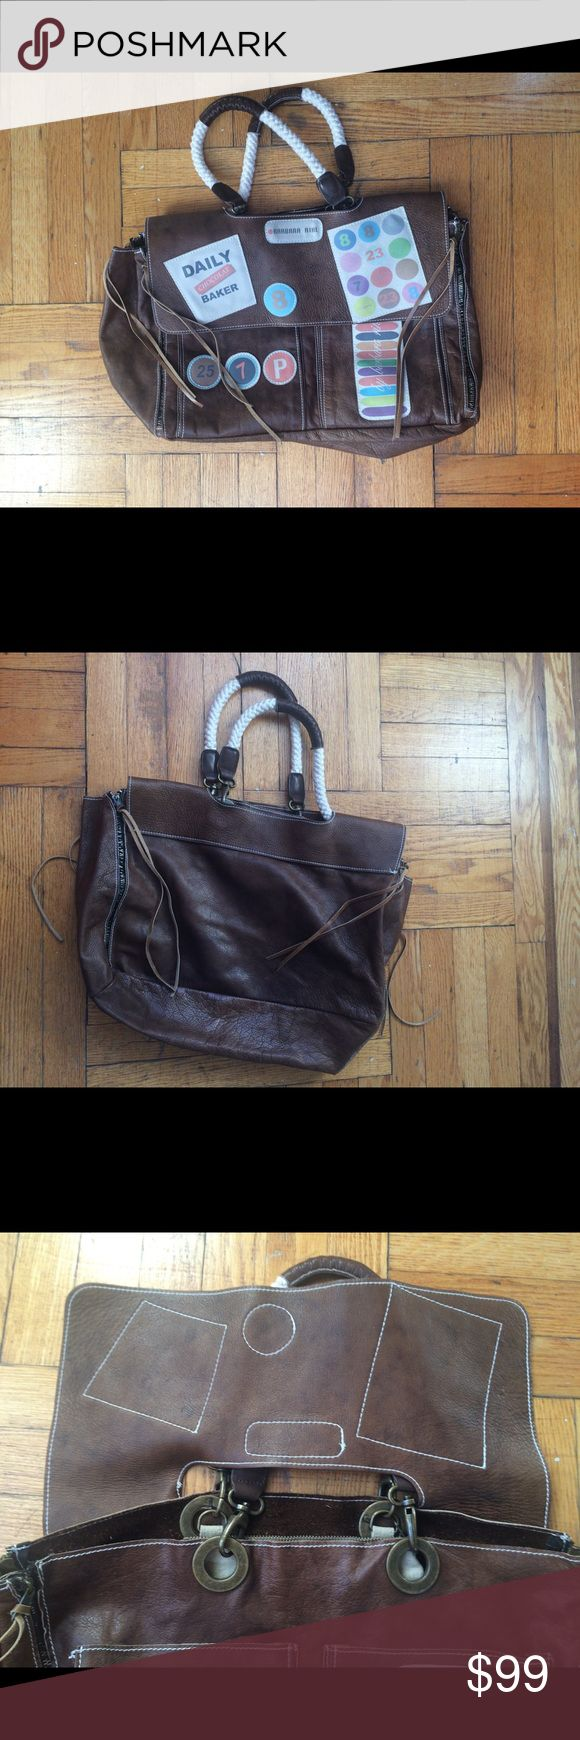 Barbara Rihl leather bag Barely used large leather bag by Parisian designer Barbara Rihl. Suede insight and all details and metal wear in excellent condition. Detachable pocket inside. Barbara Rihl Bags Shoulder Bags